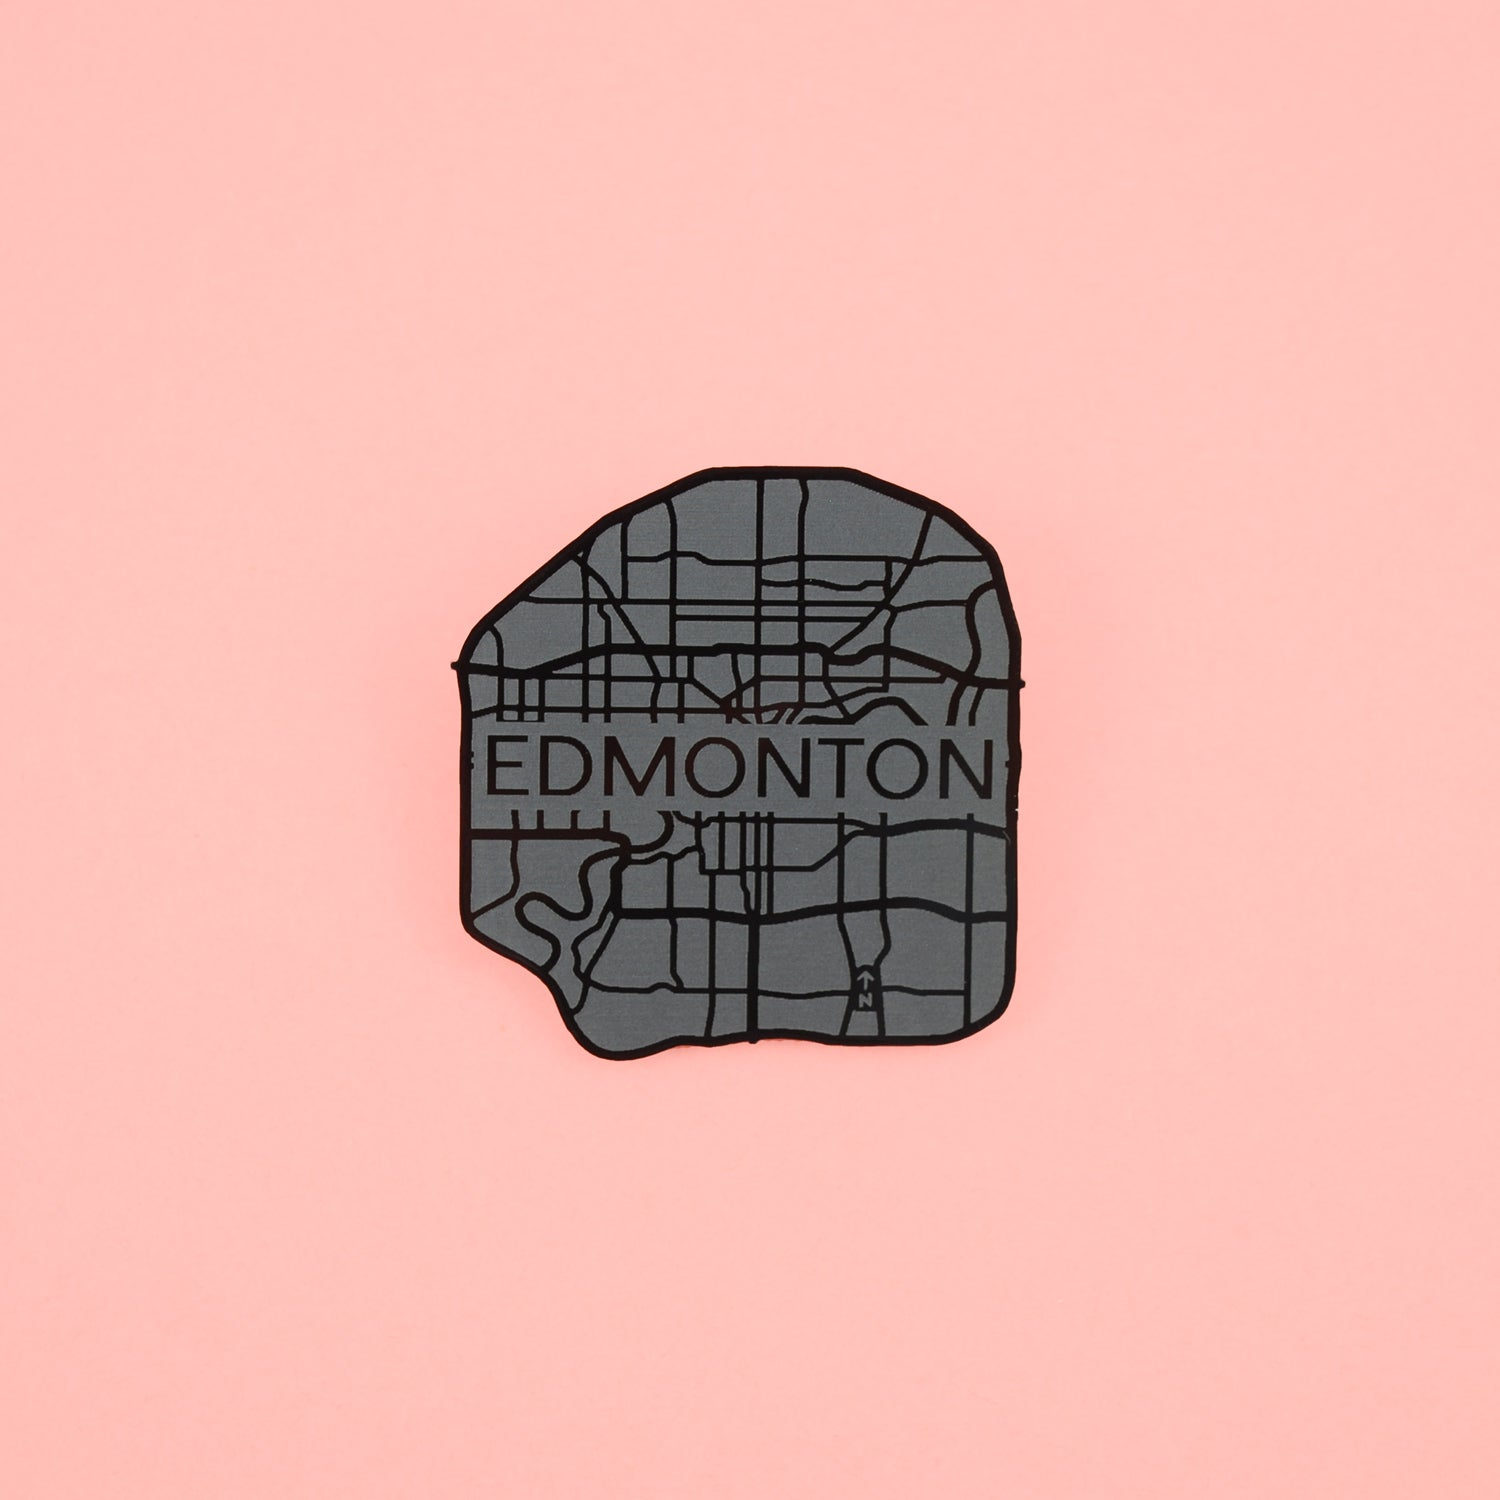 Edmonton Map Pin